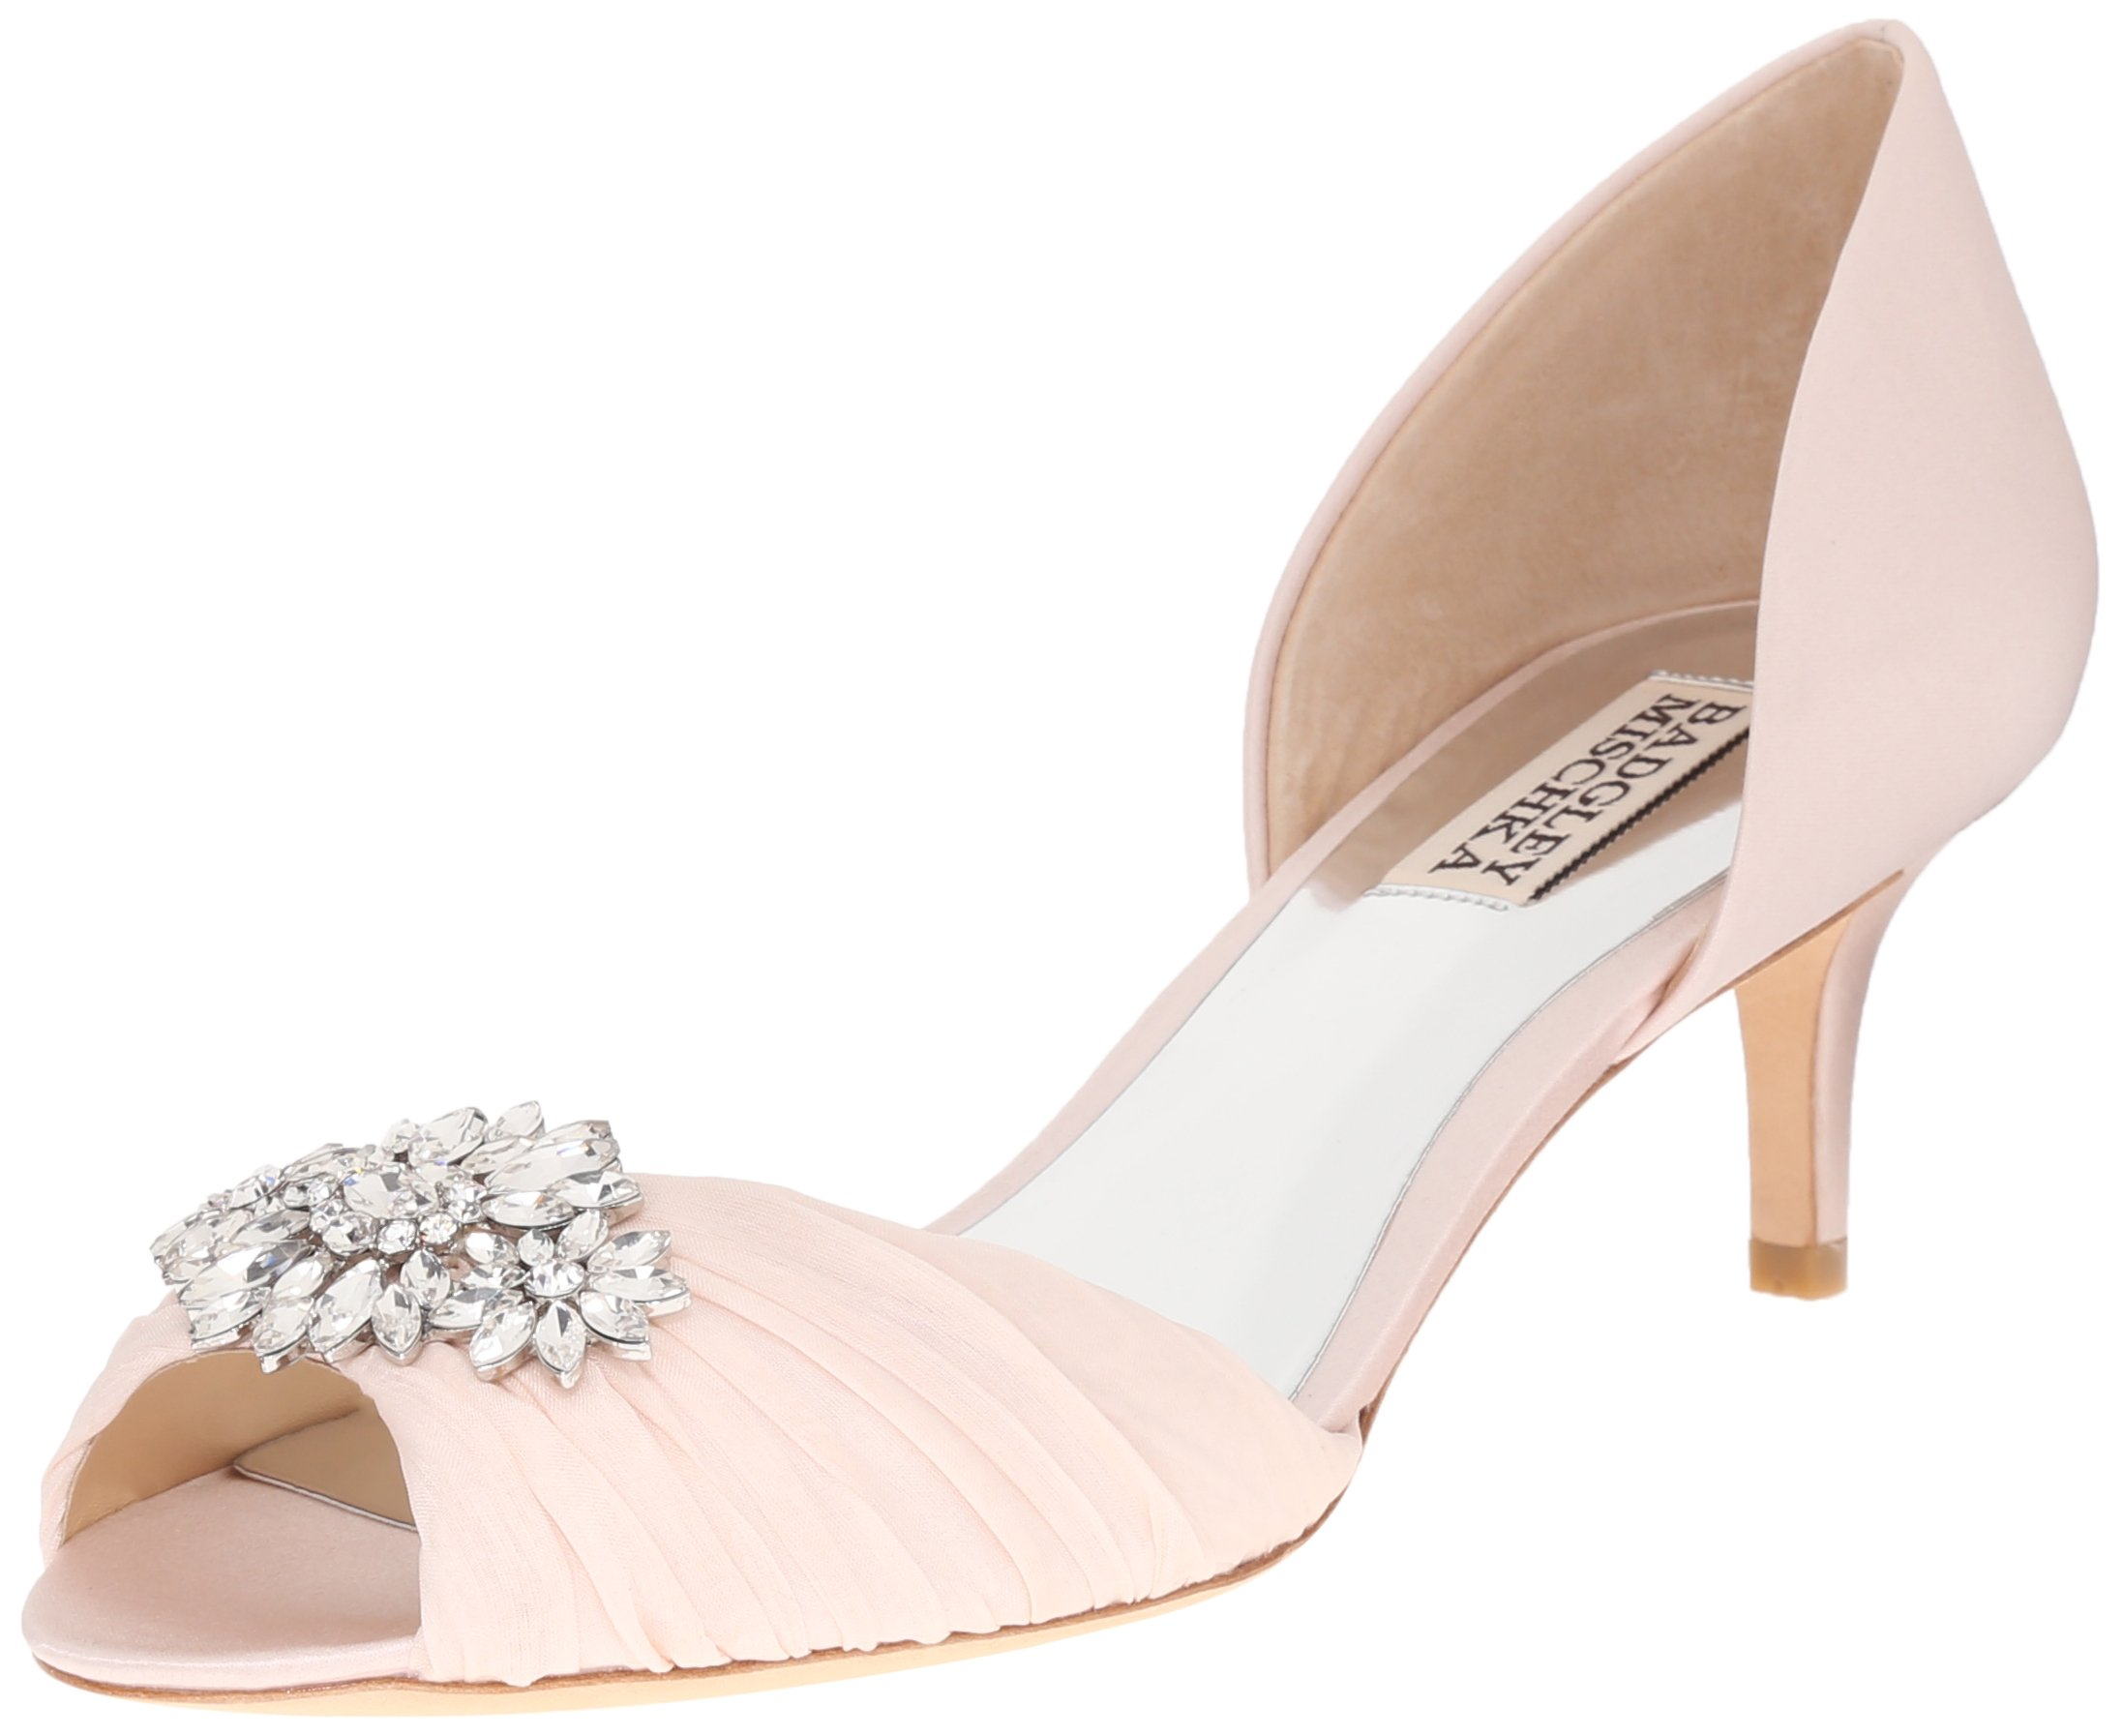 Badgley Mischka Women's Caitlin Dress Pump, Light Pink, 7.5 M US by Badgley Mischka